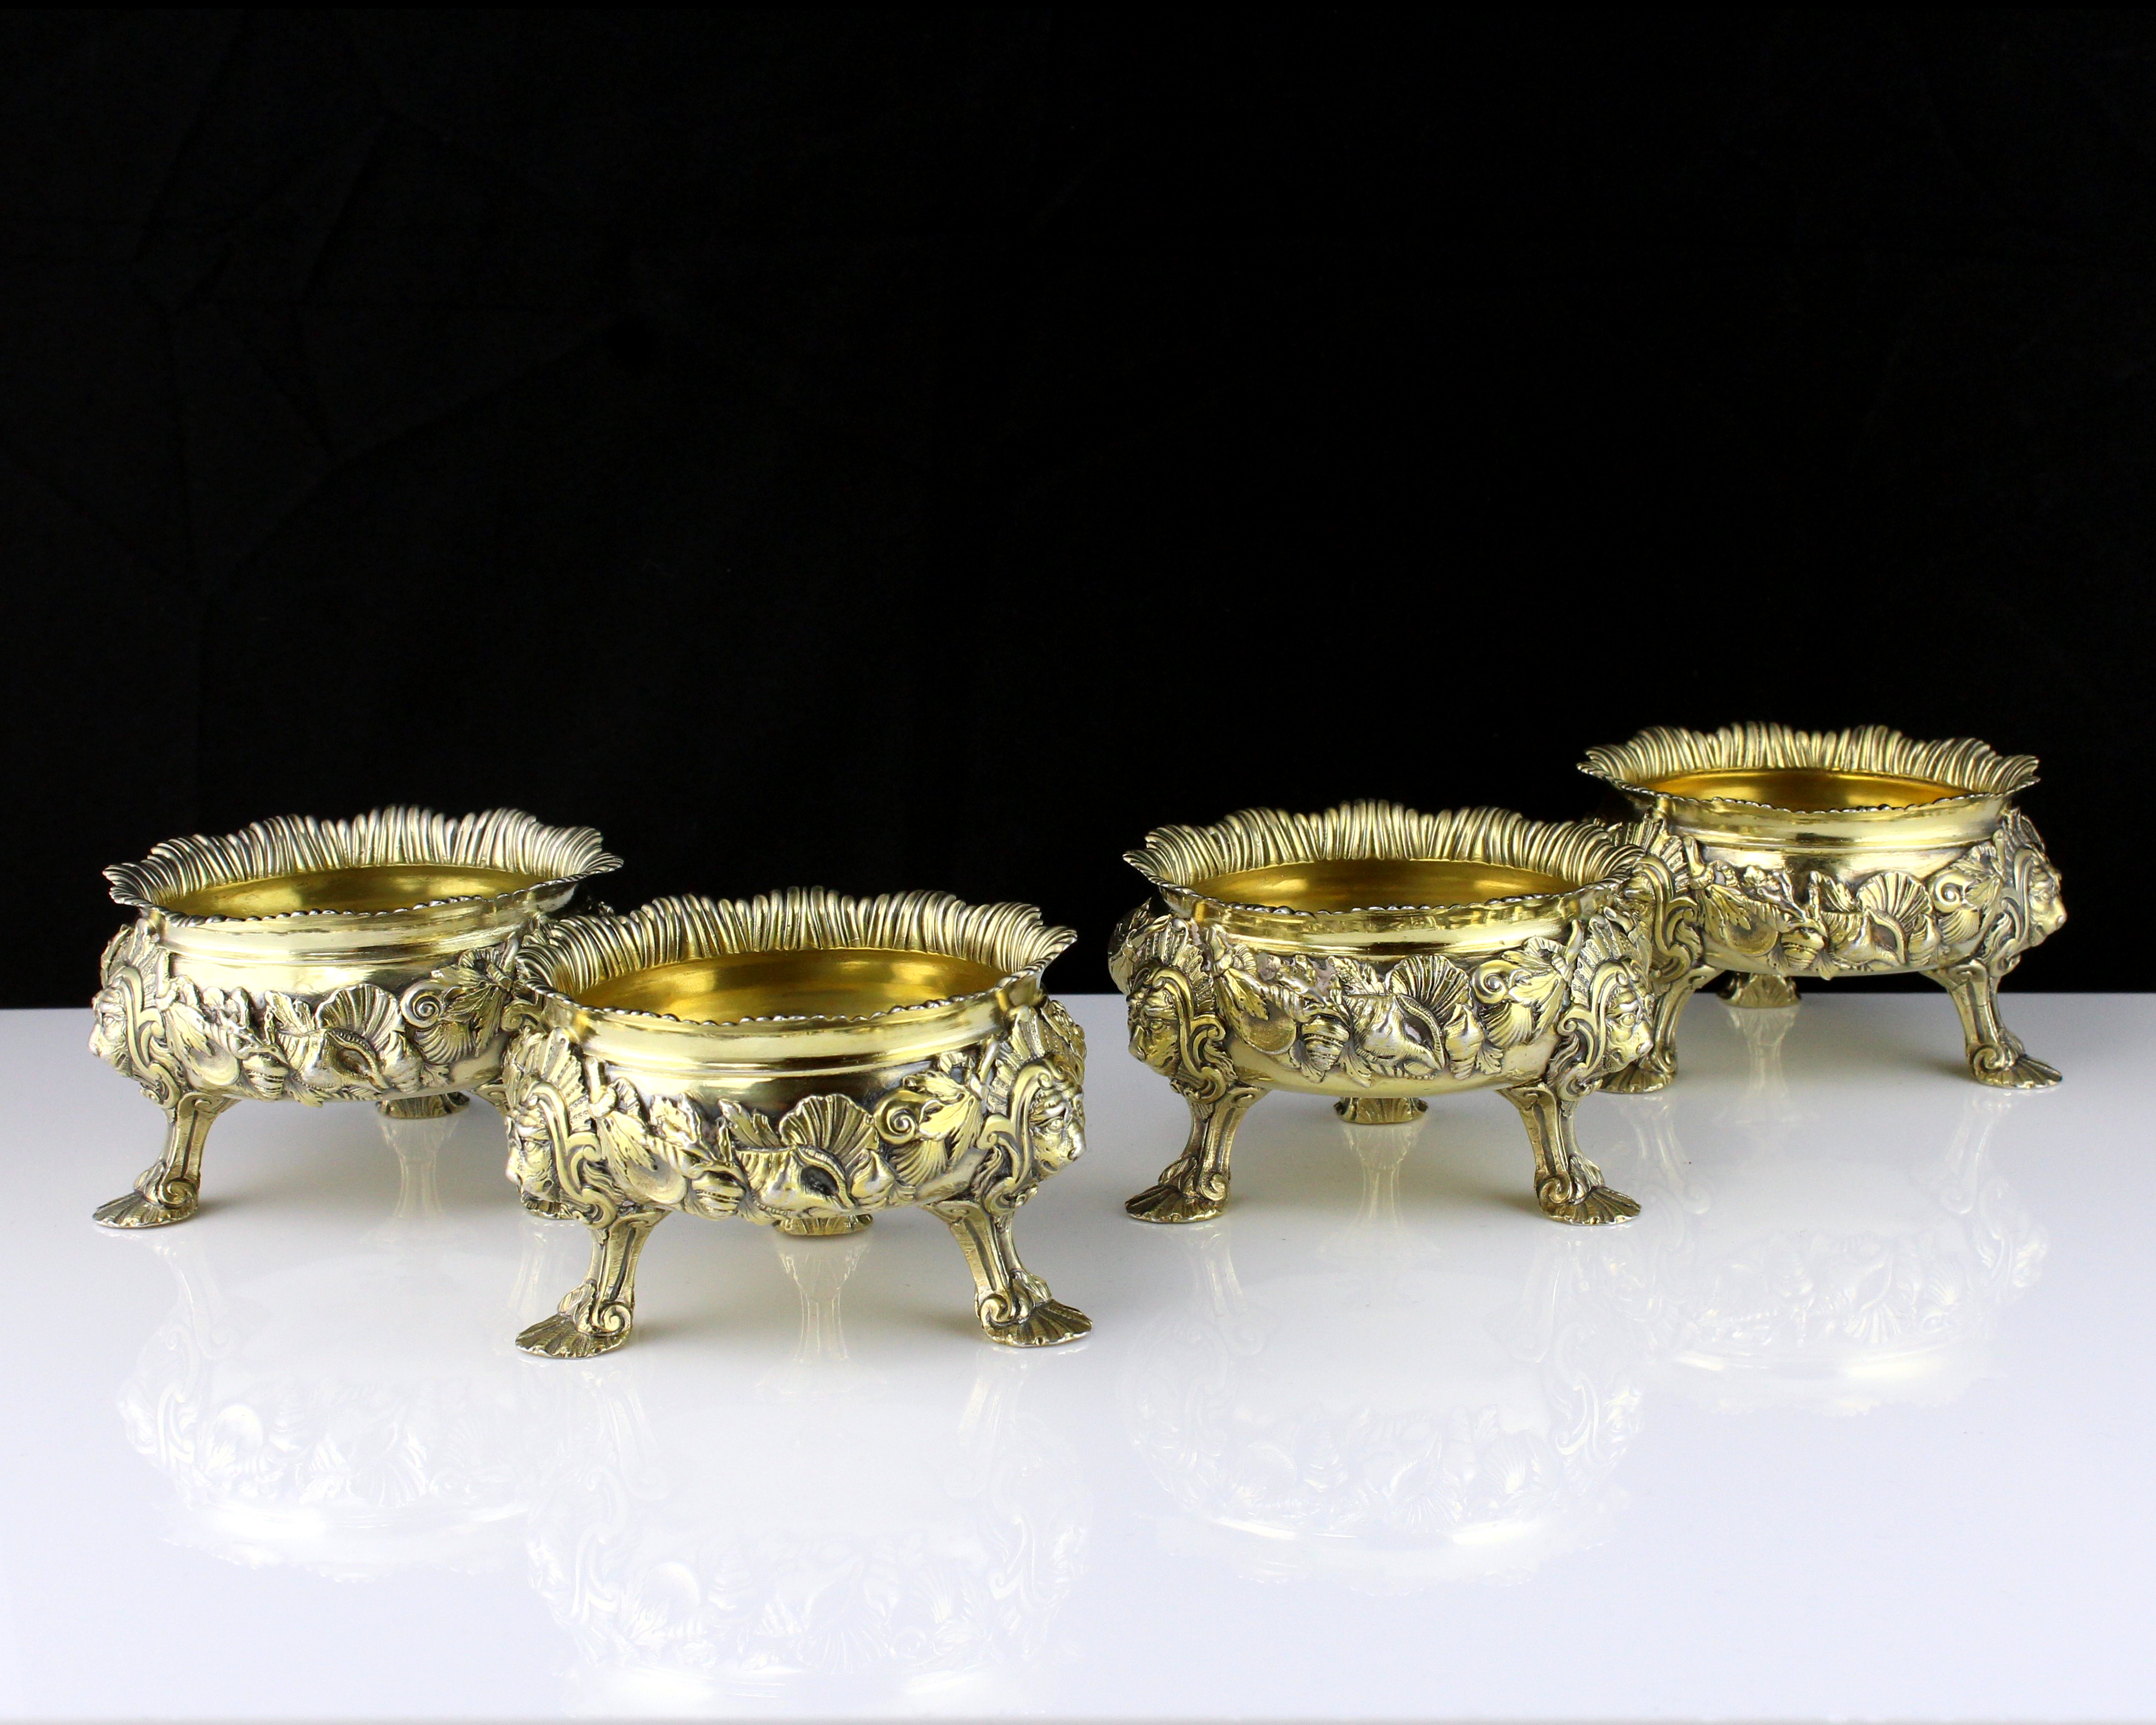 Los 48 - A set of four antique George II Sterling Silver gilt salt cellars by Peter White, London 1746 of